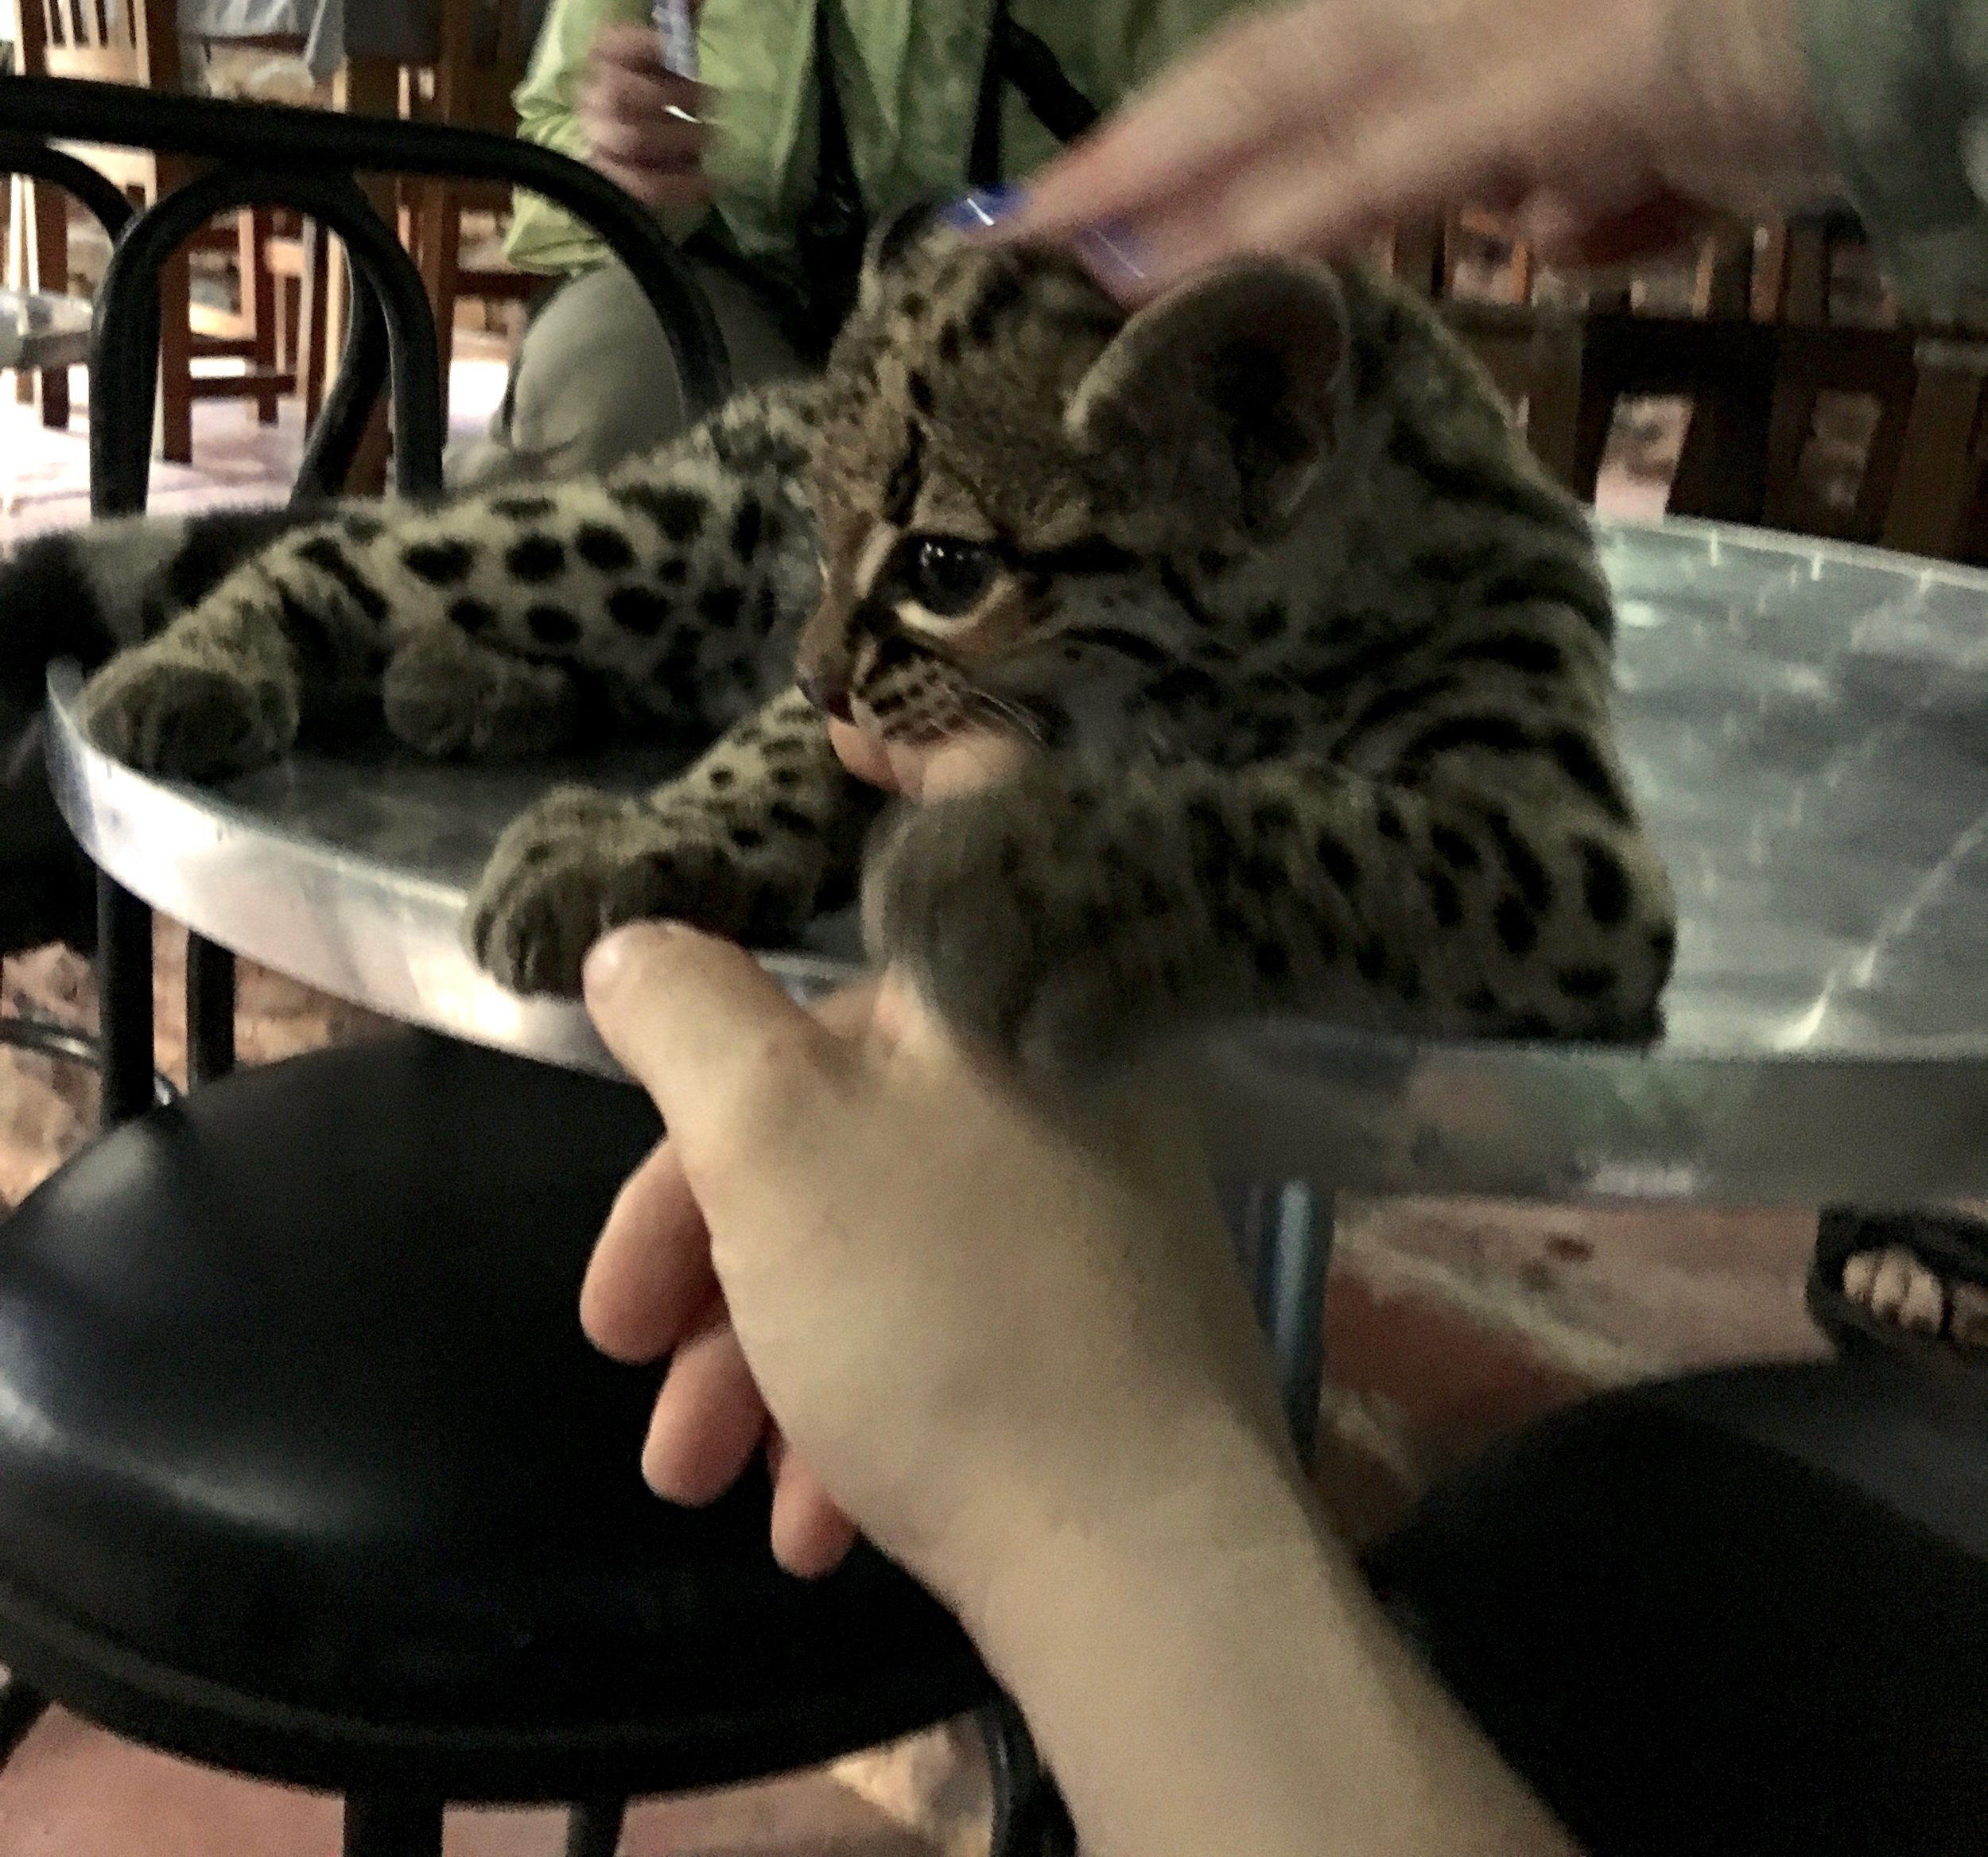 Nothing in life could have prepared me for the honor of being chewed on by an ocelot.